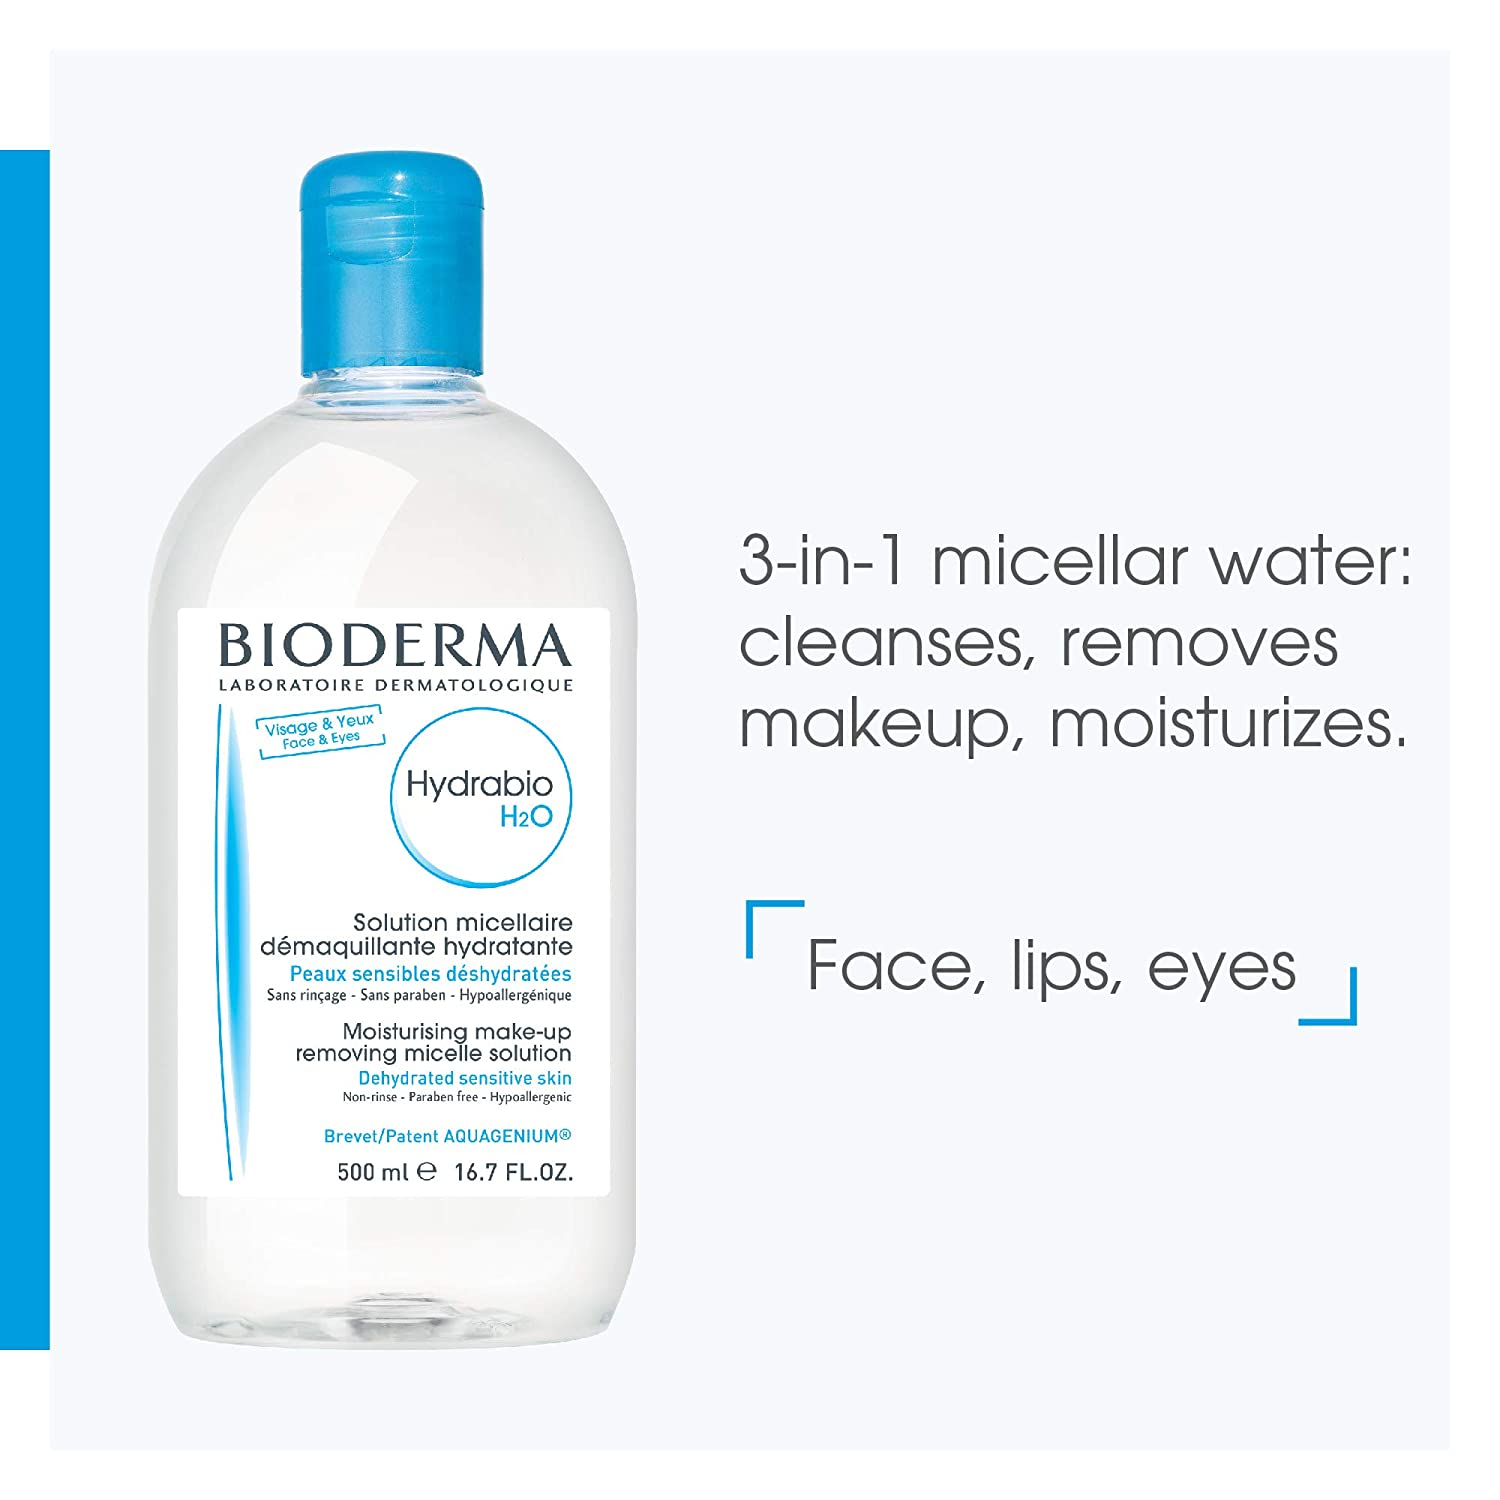 Bioderma Micellar Water Our Review